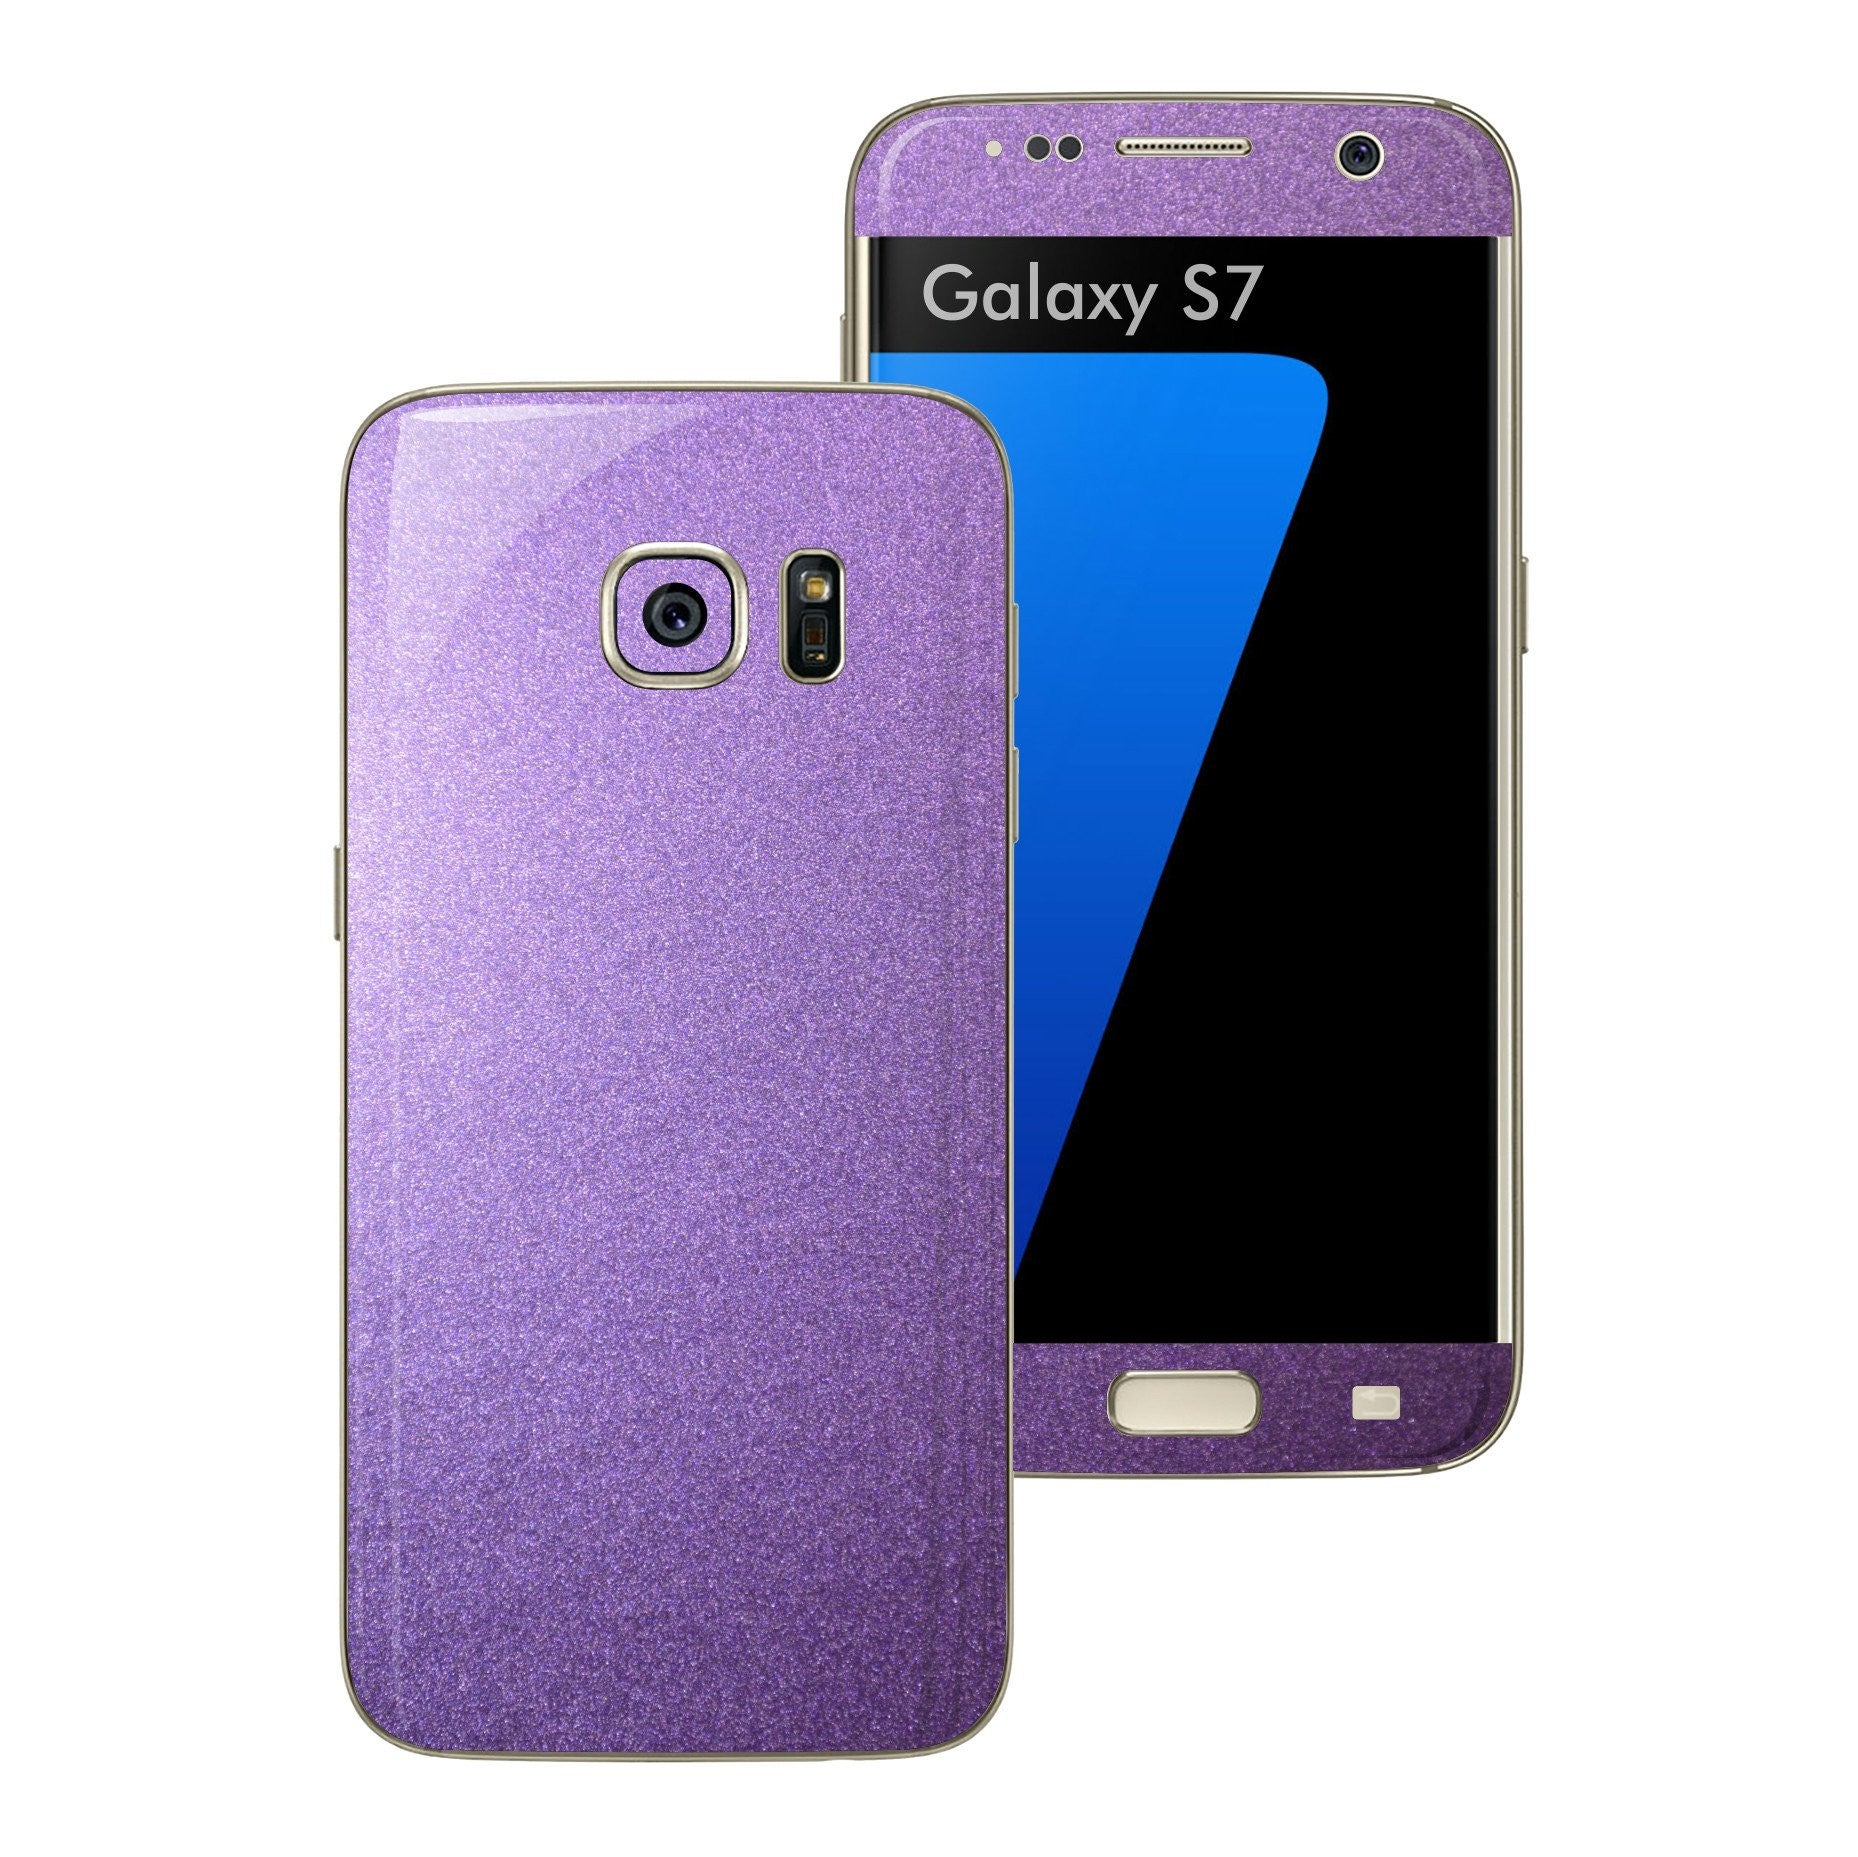 Samsung Galaxy S7 Violet Matt Metallic Skin Wrap Decal Sticker Cover Protector by EasySkinz